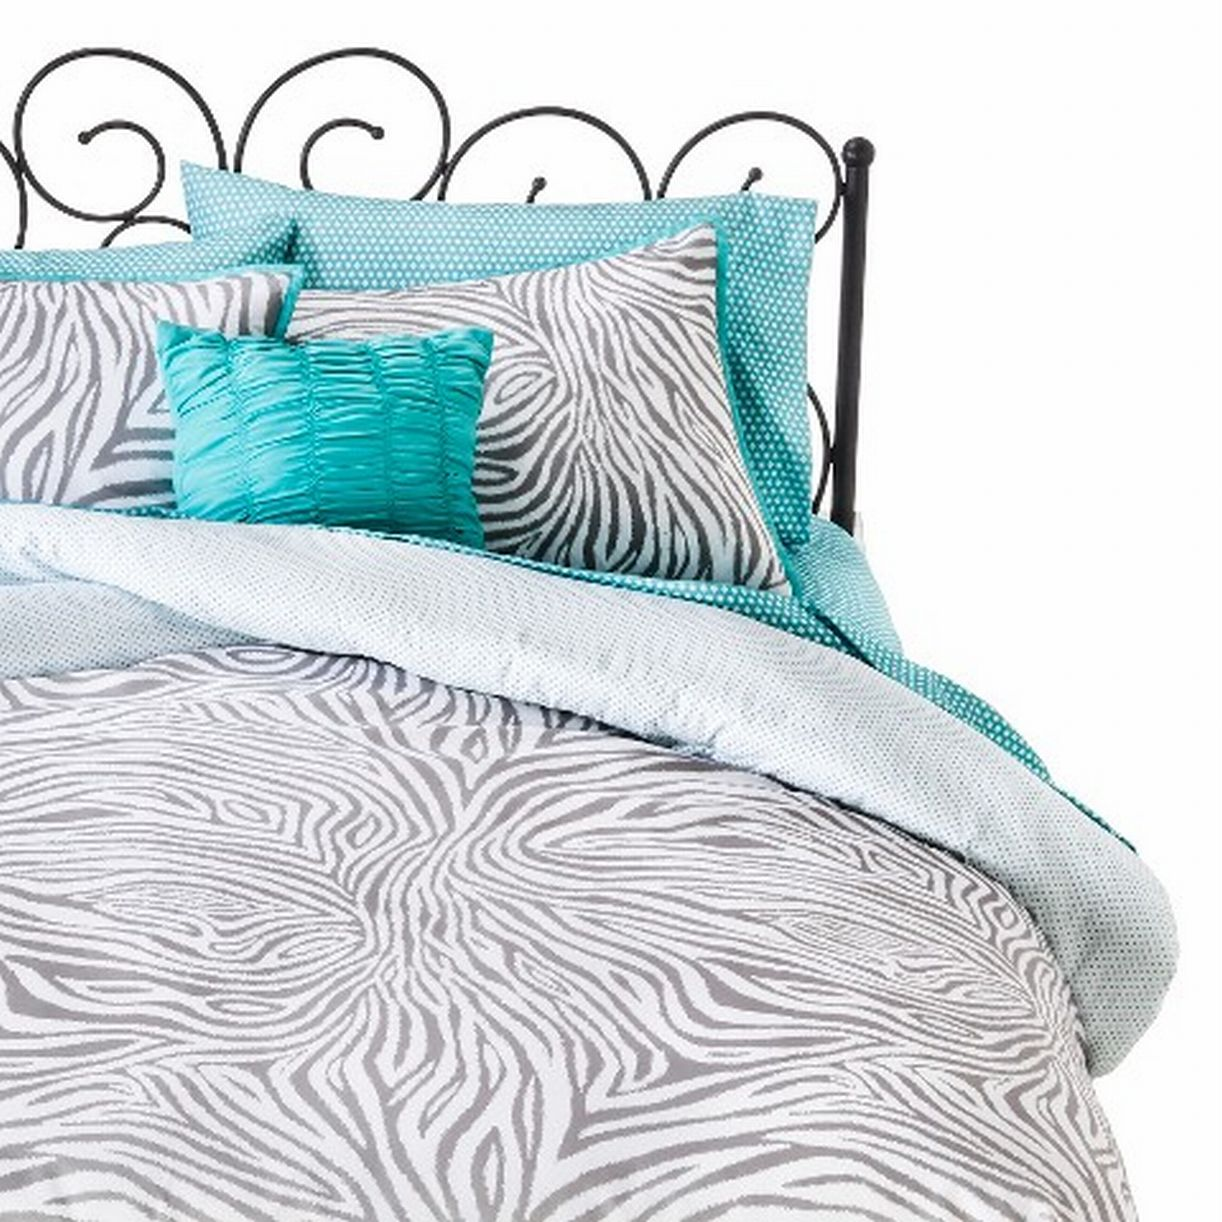 Xhilaration Twin Bed In Bag Gray Zebra Stripe Comforter Sheets Sham & Pillow